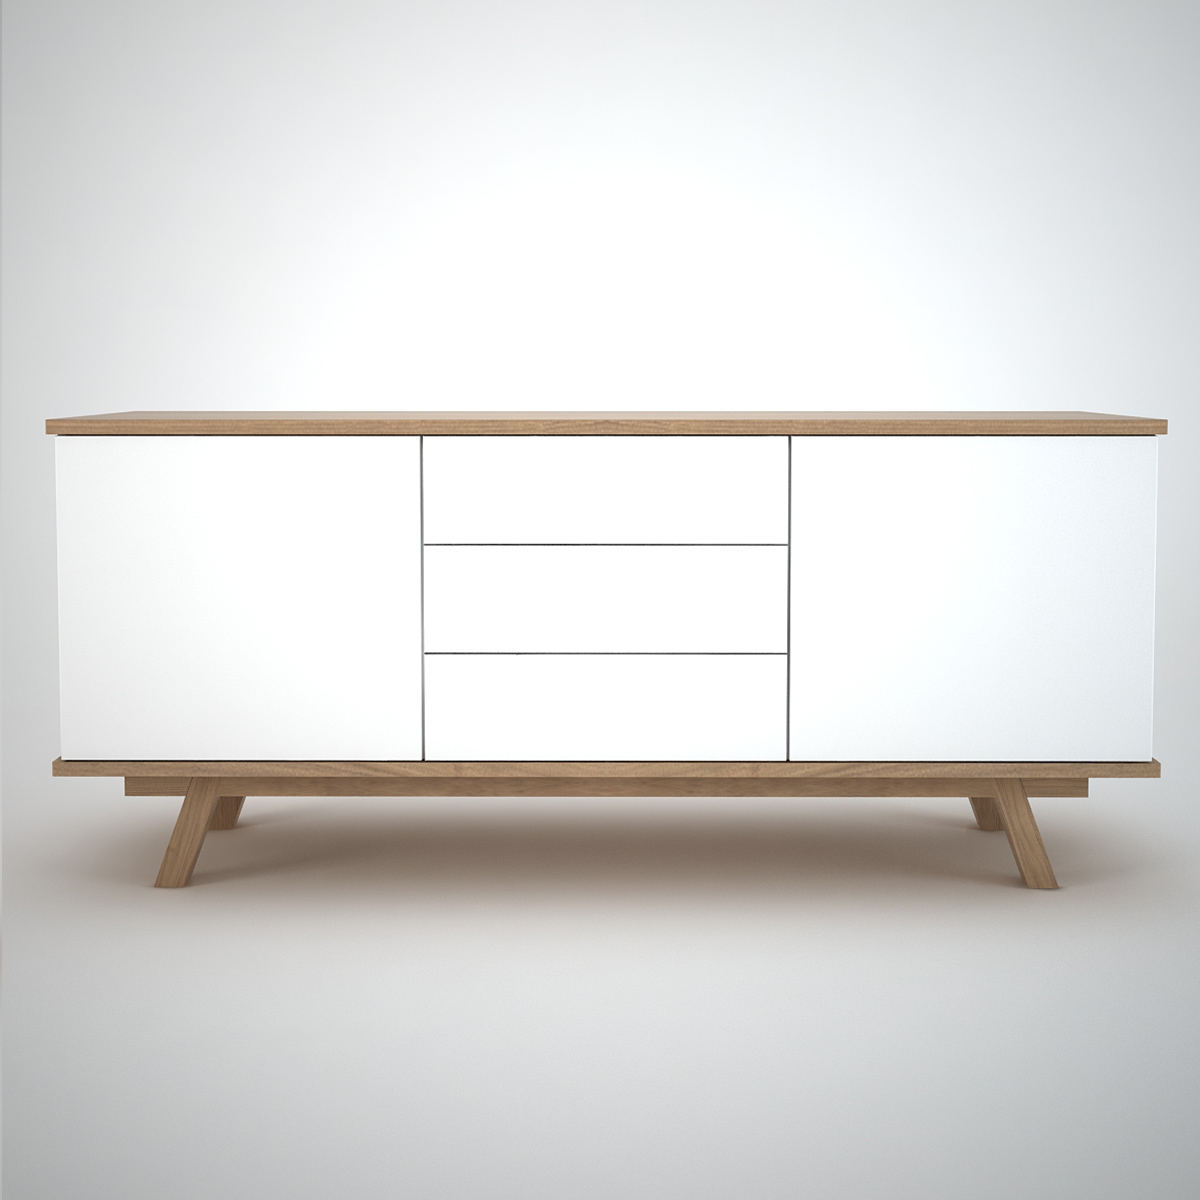 ottawa sideboard 2 3 white join furniture. Black Bedroom Furniture Sets. Home Design Ideas